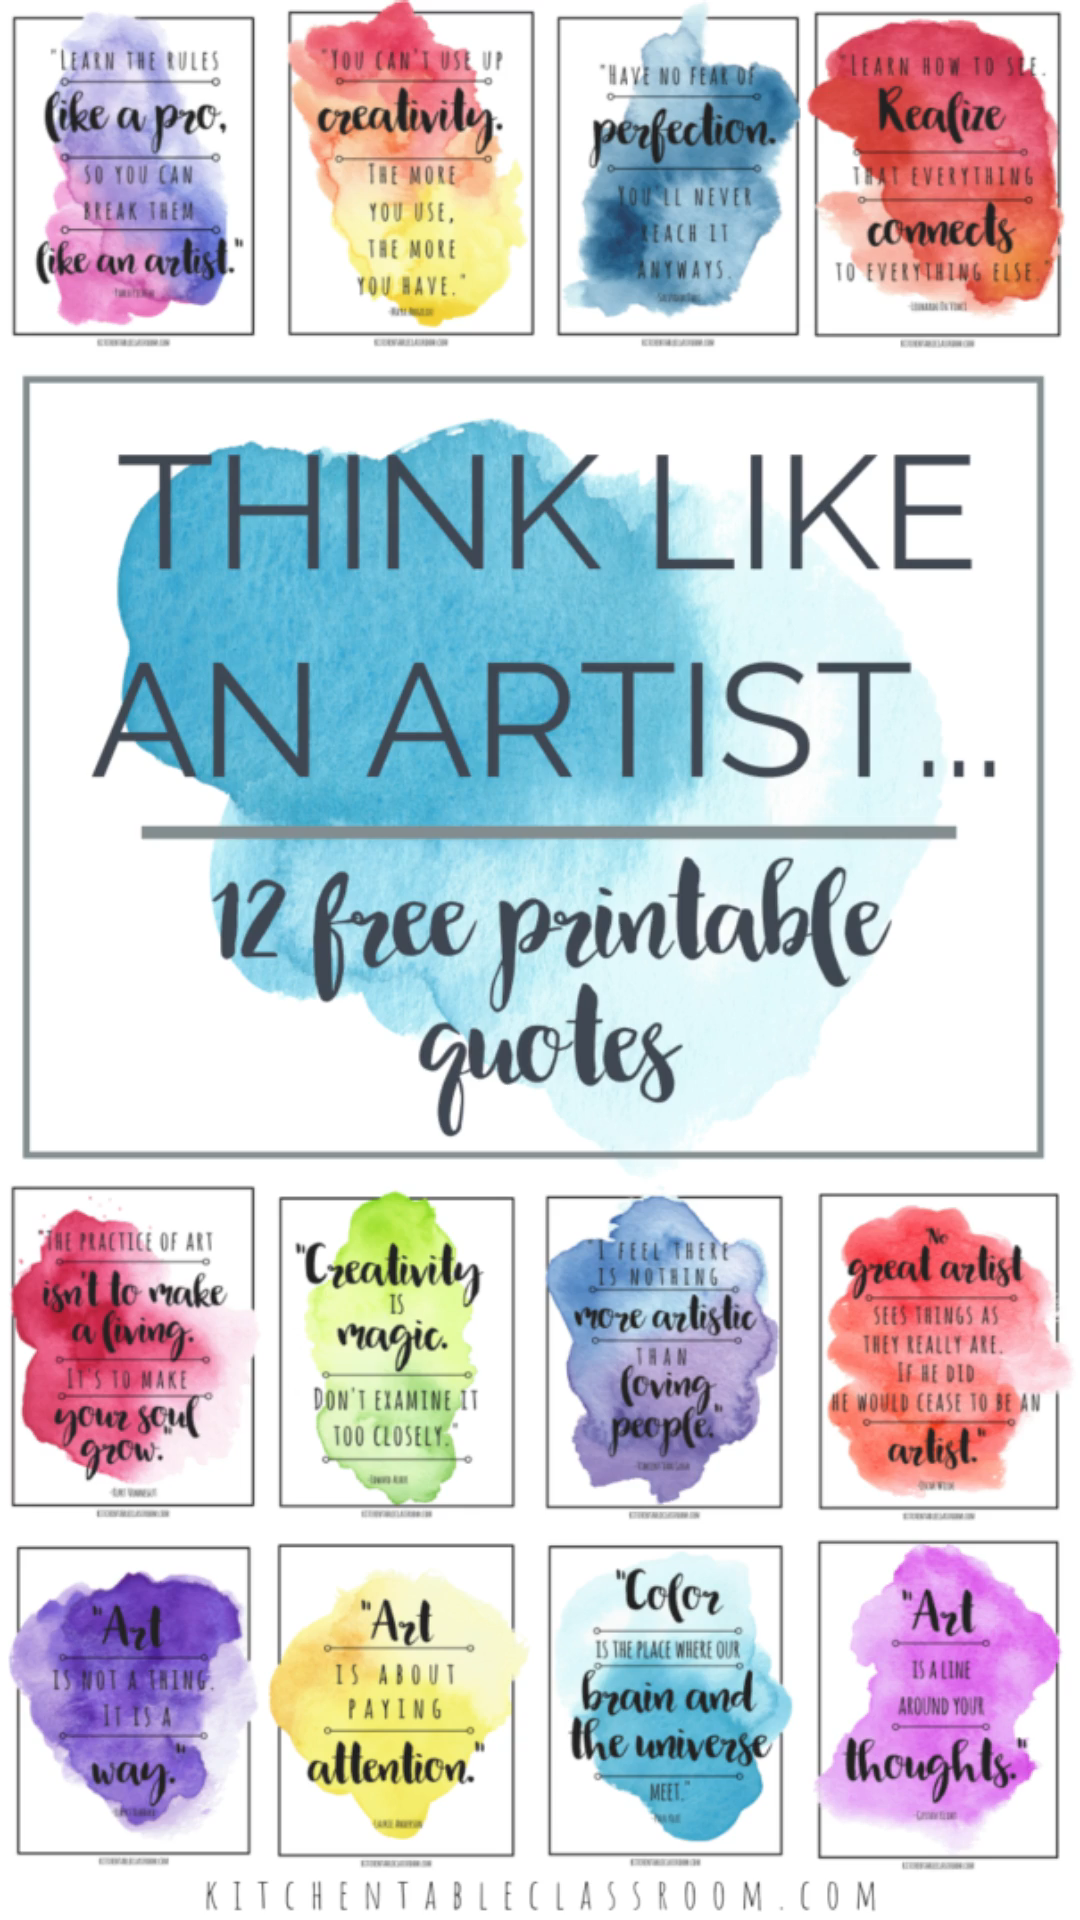 Think like an artist with this set of twelve free printable famous artist quotes.